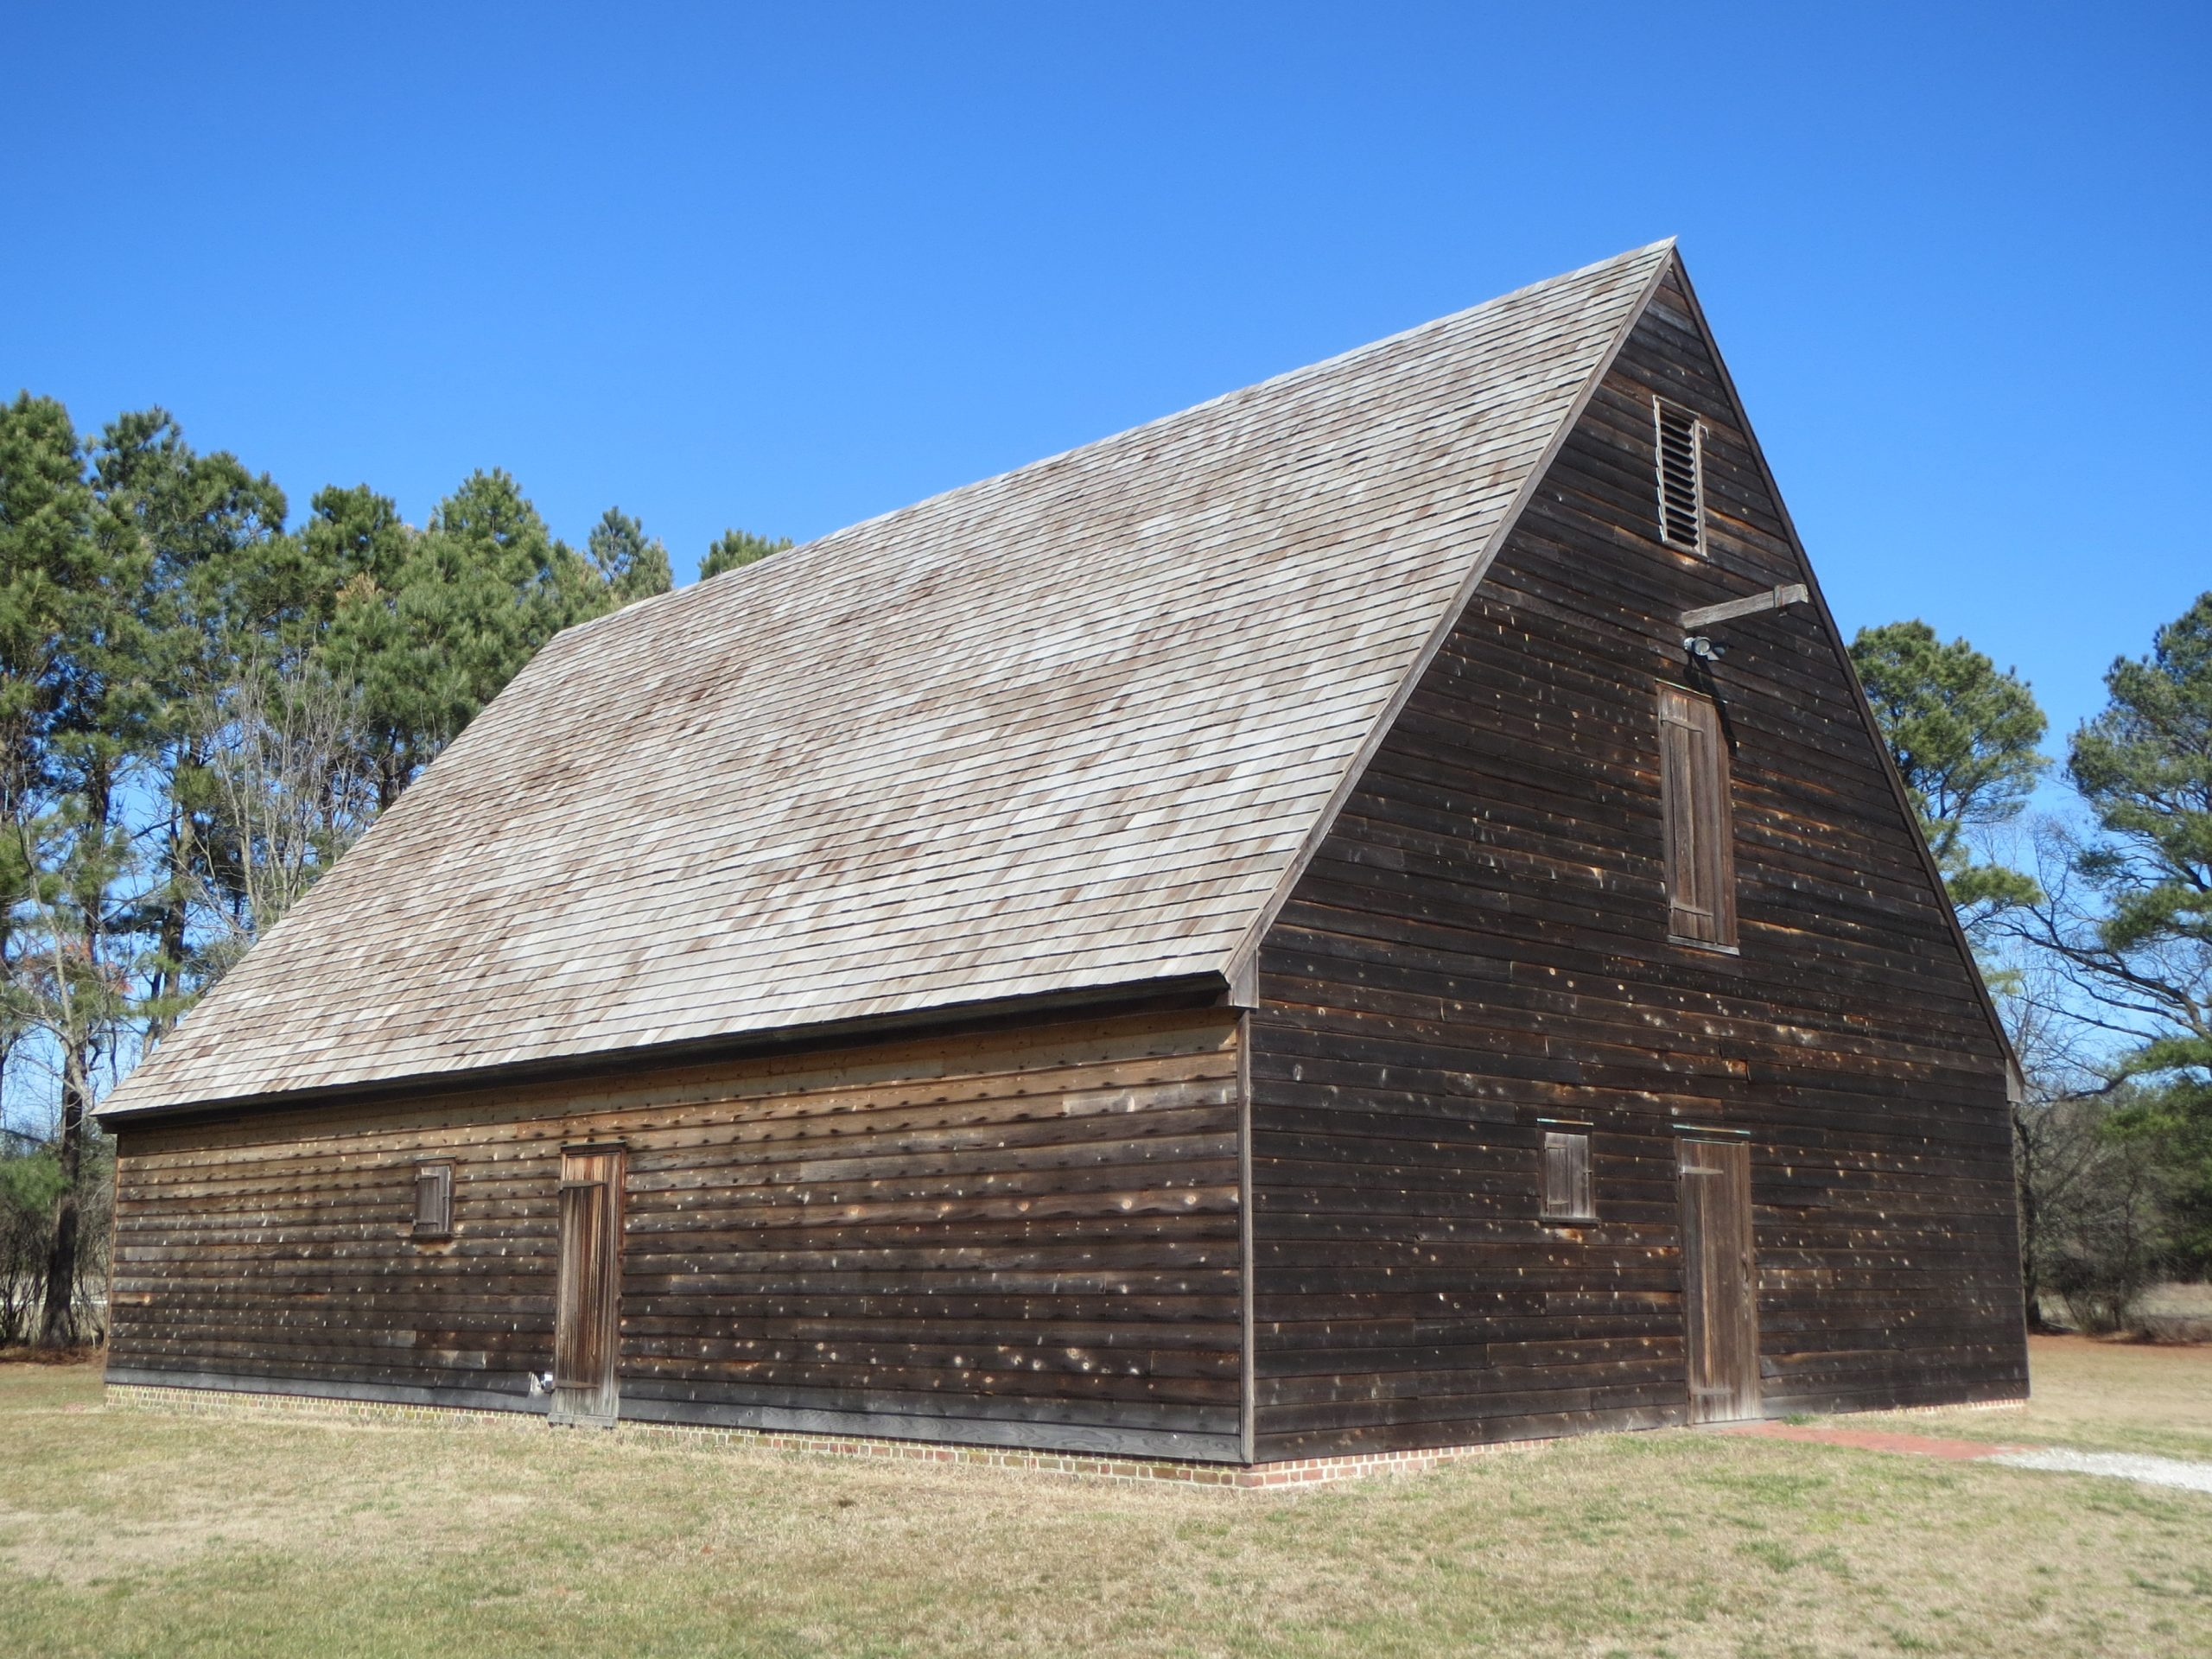 An image of a wooden farm building that is associated with Pemberton Hall, a home built in the mid-1700s. The buildings are now home to a museum and park.